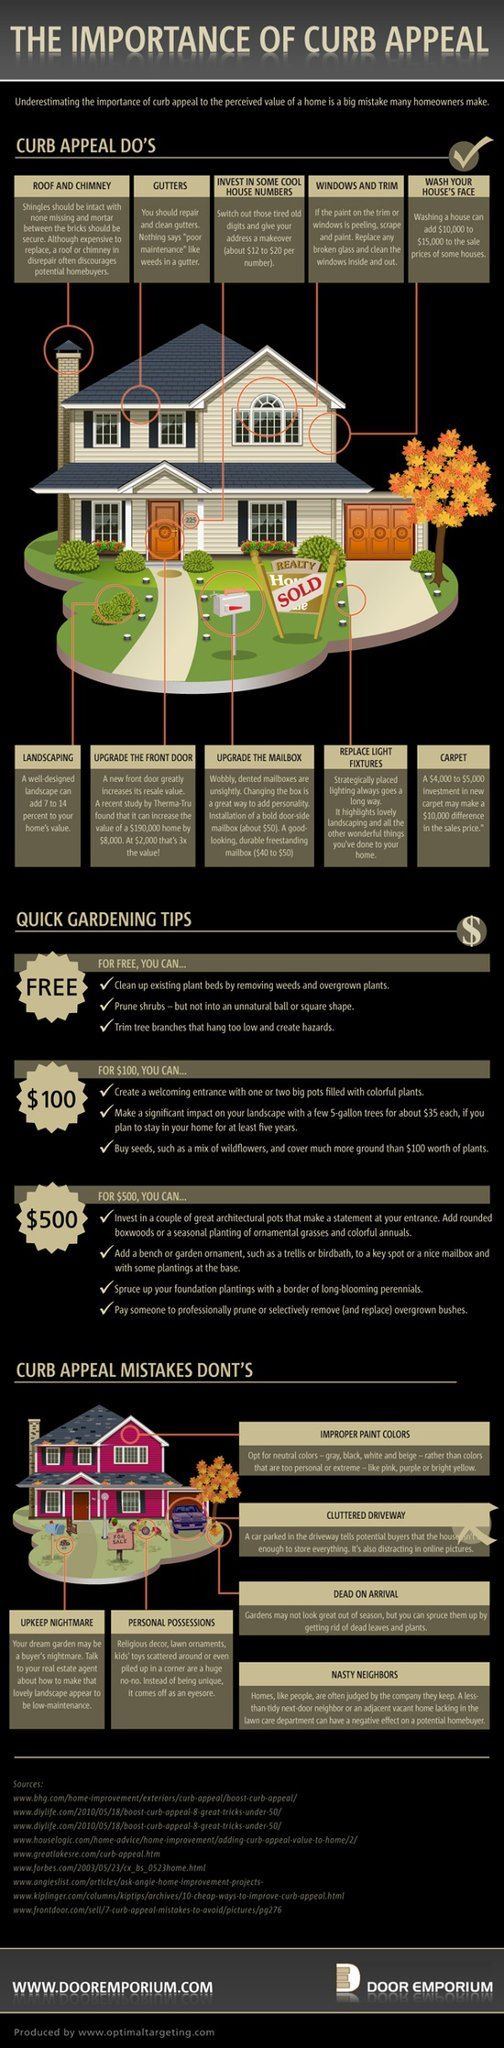 Want to get buyers to stop? Improve your curb appeal. GREAT infographic with things you can do that are free, around $100, or around $500!